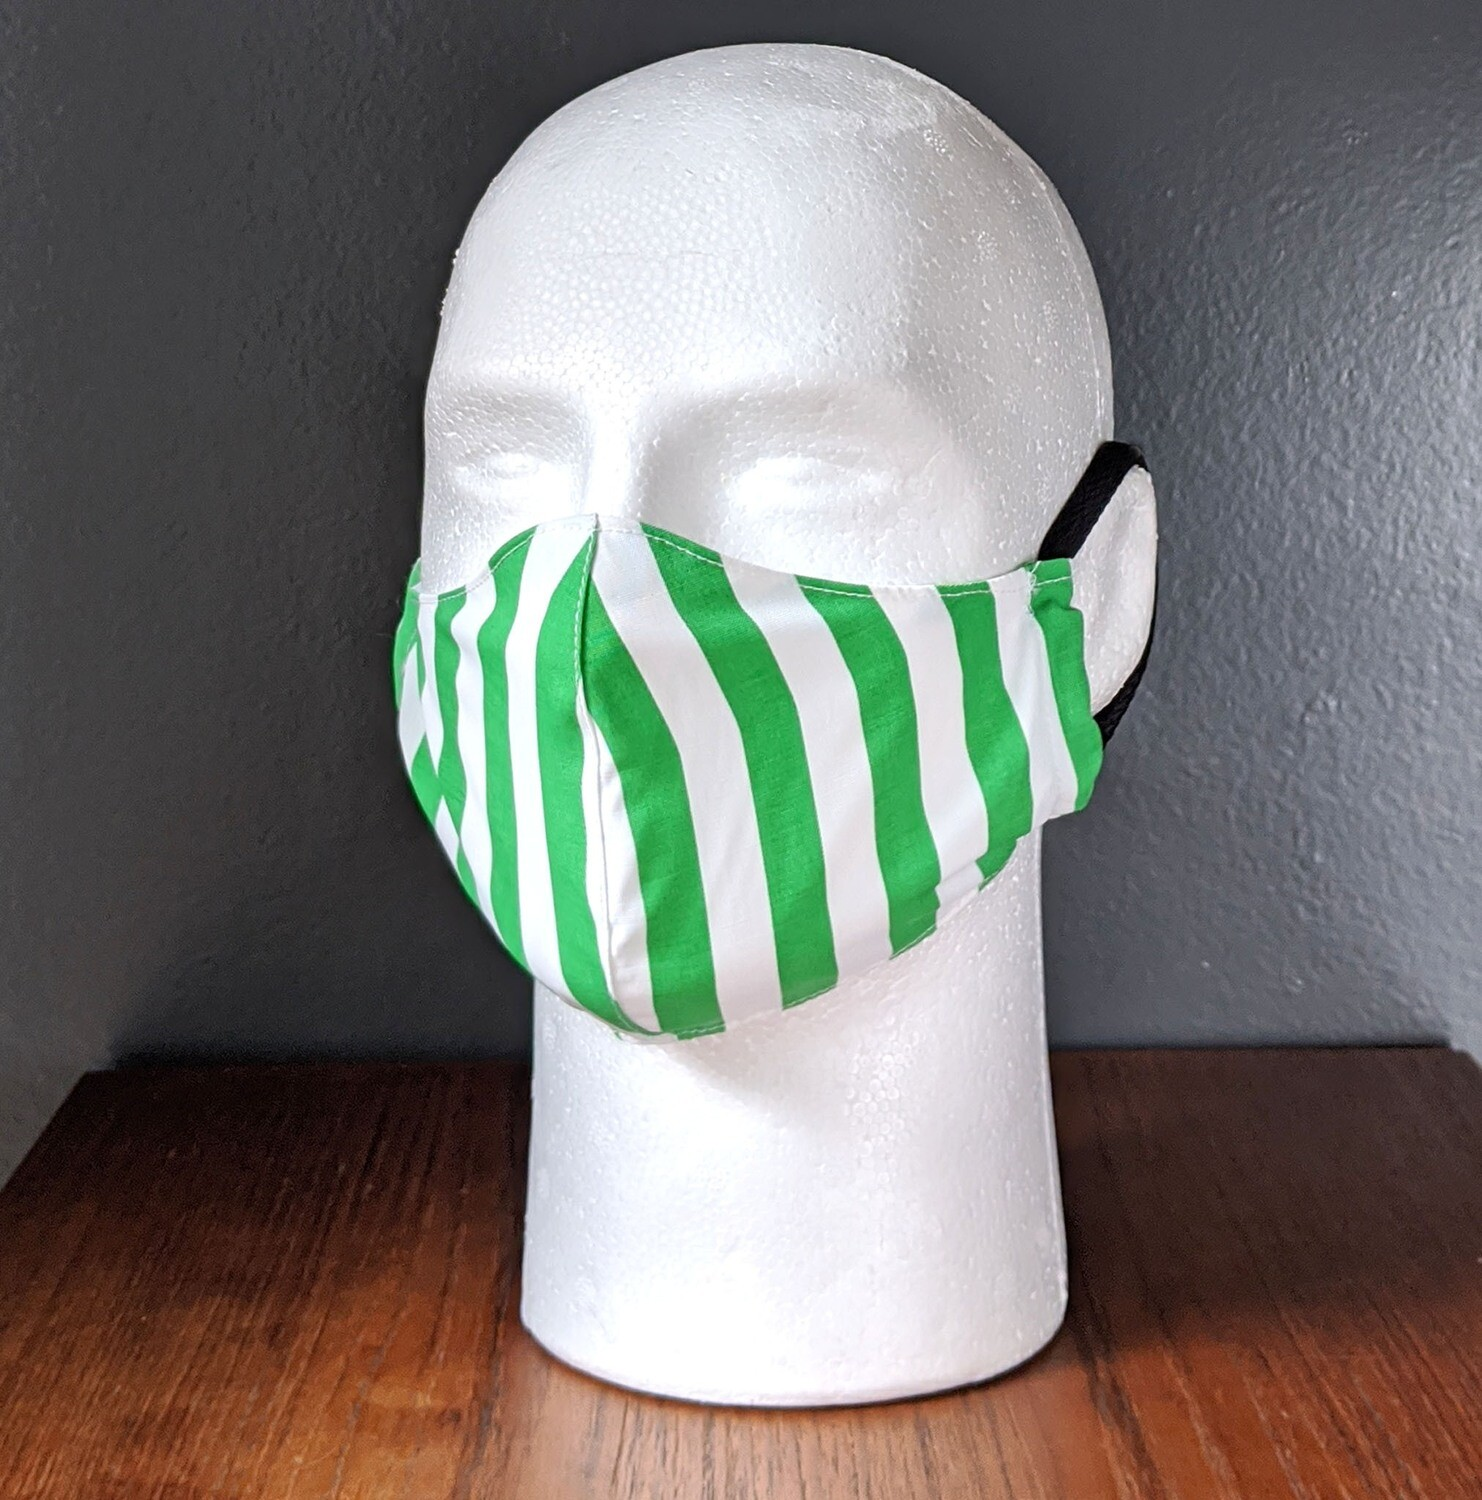 Peppermint Green Stripe Face Masks, Small, Unisex, Washable, Reusable, Double Layer for Smog, Pollen, Dust, Smoke. Made in USA